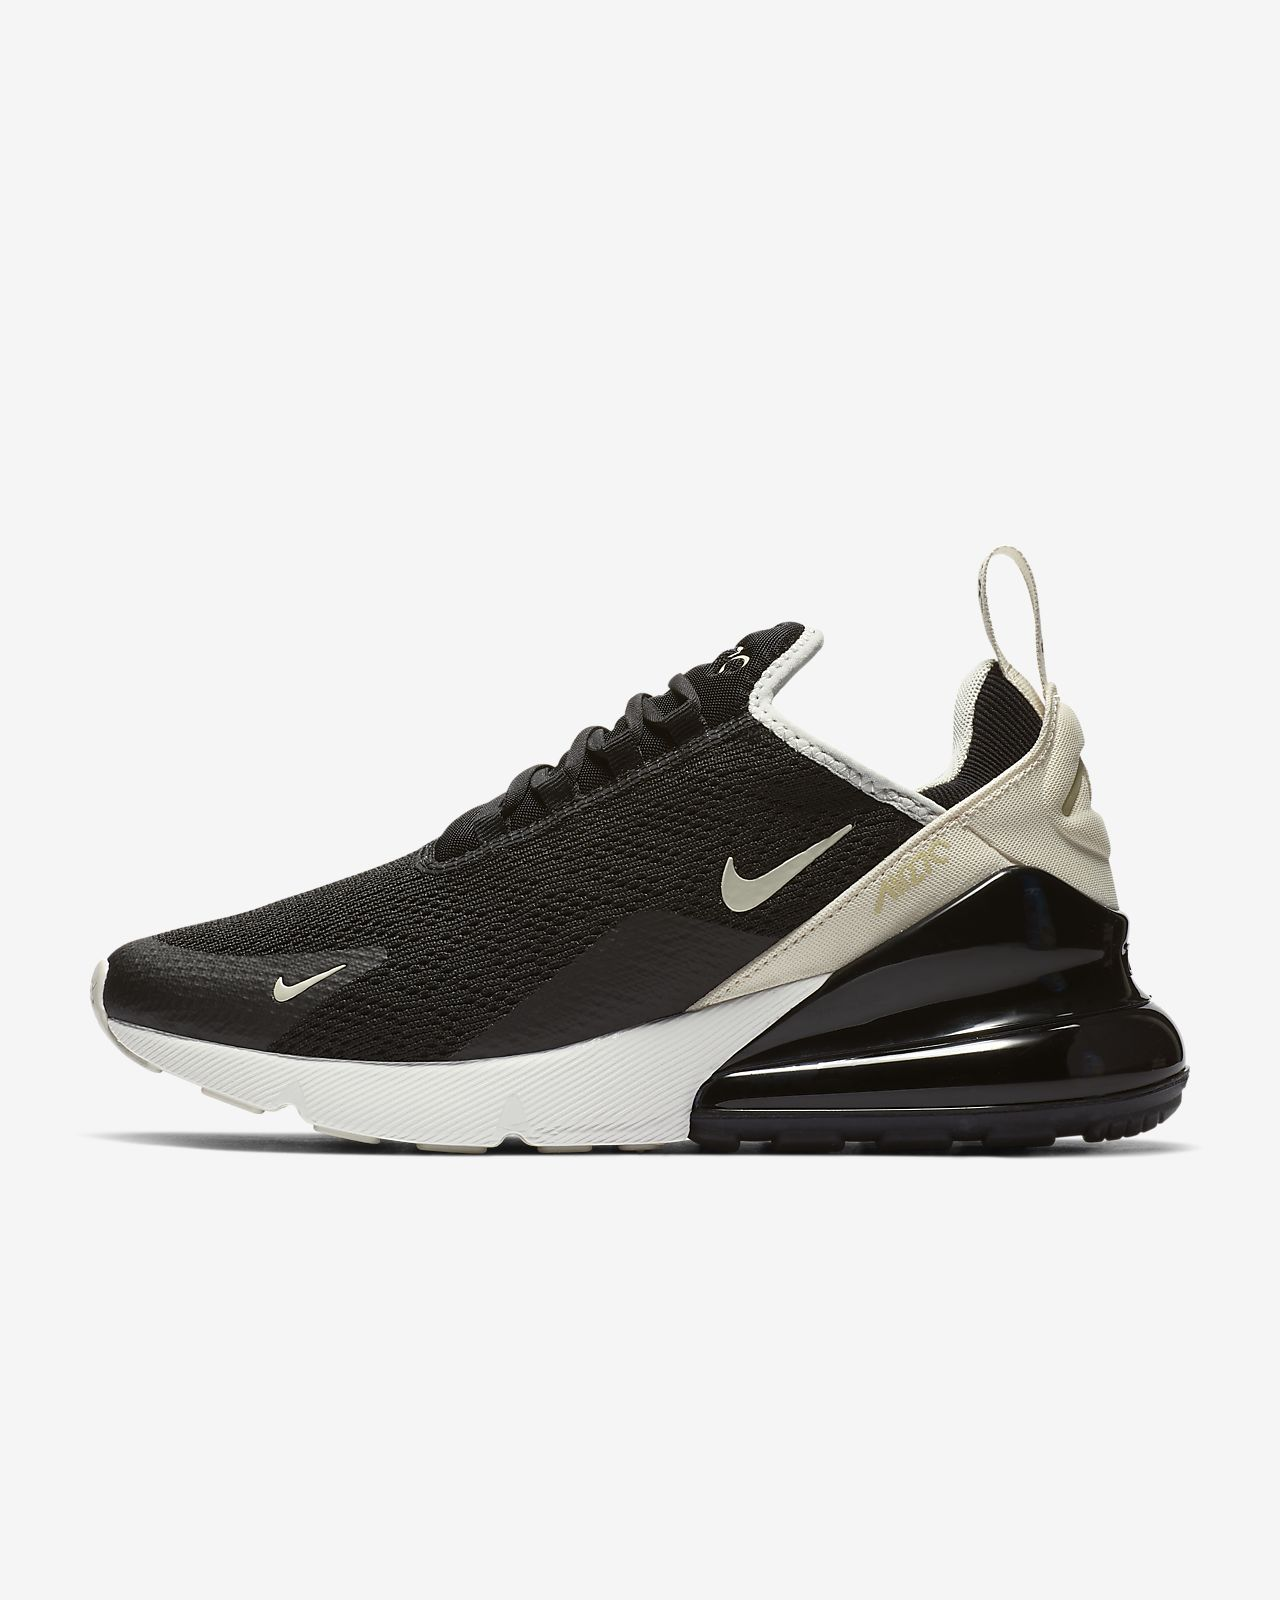 899d529830865 Nike Air Max 270 Women s Shoe. Nike.com AU